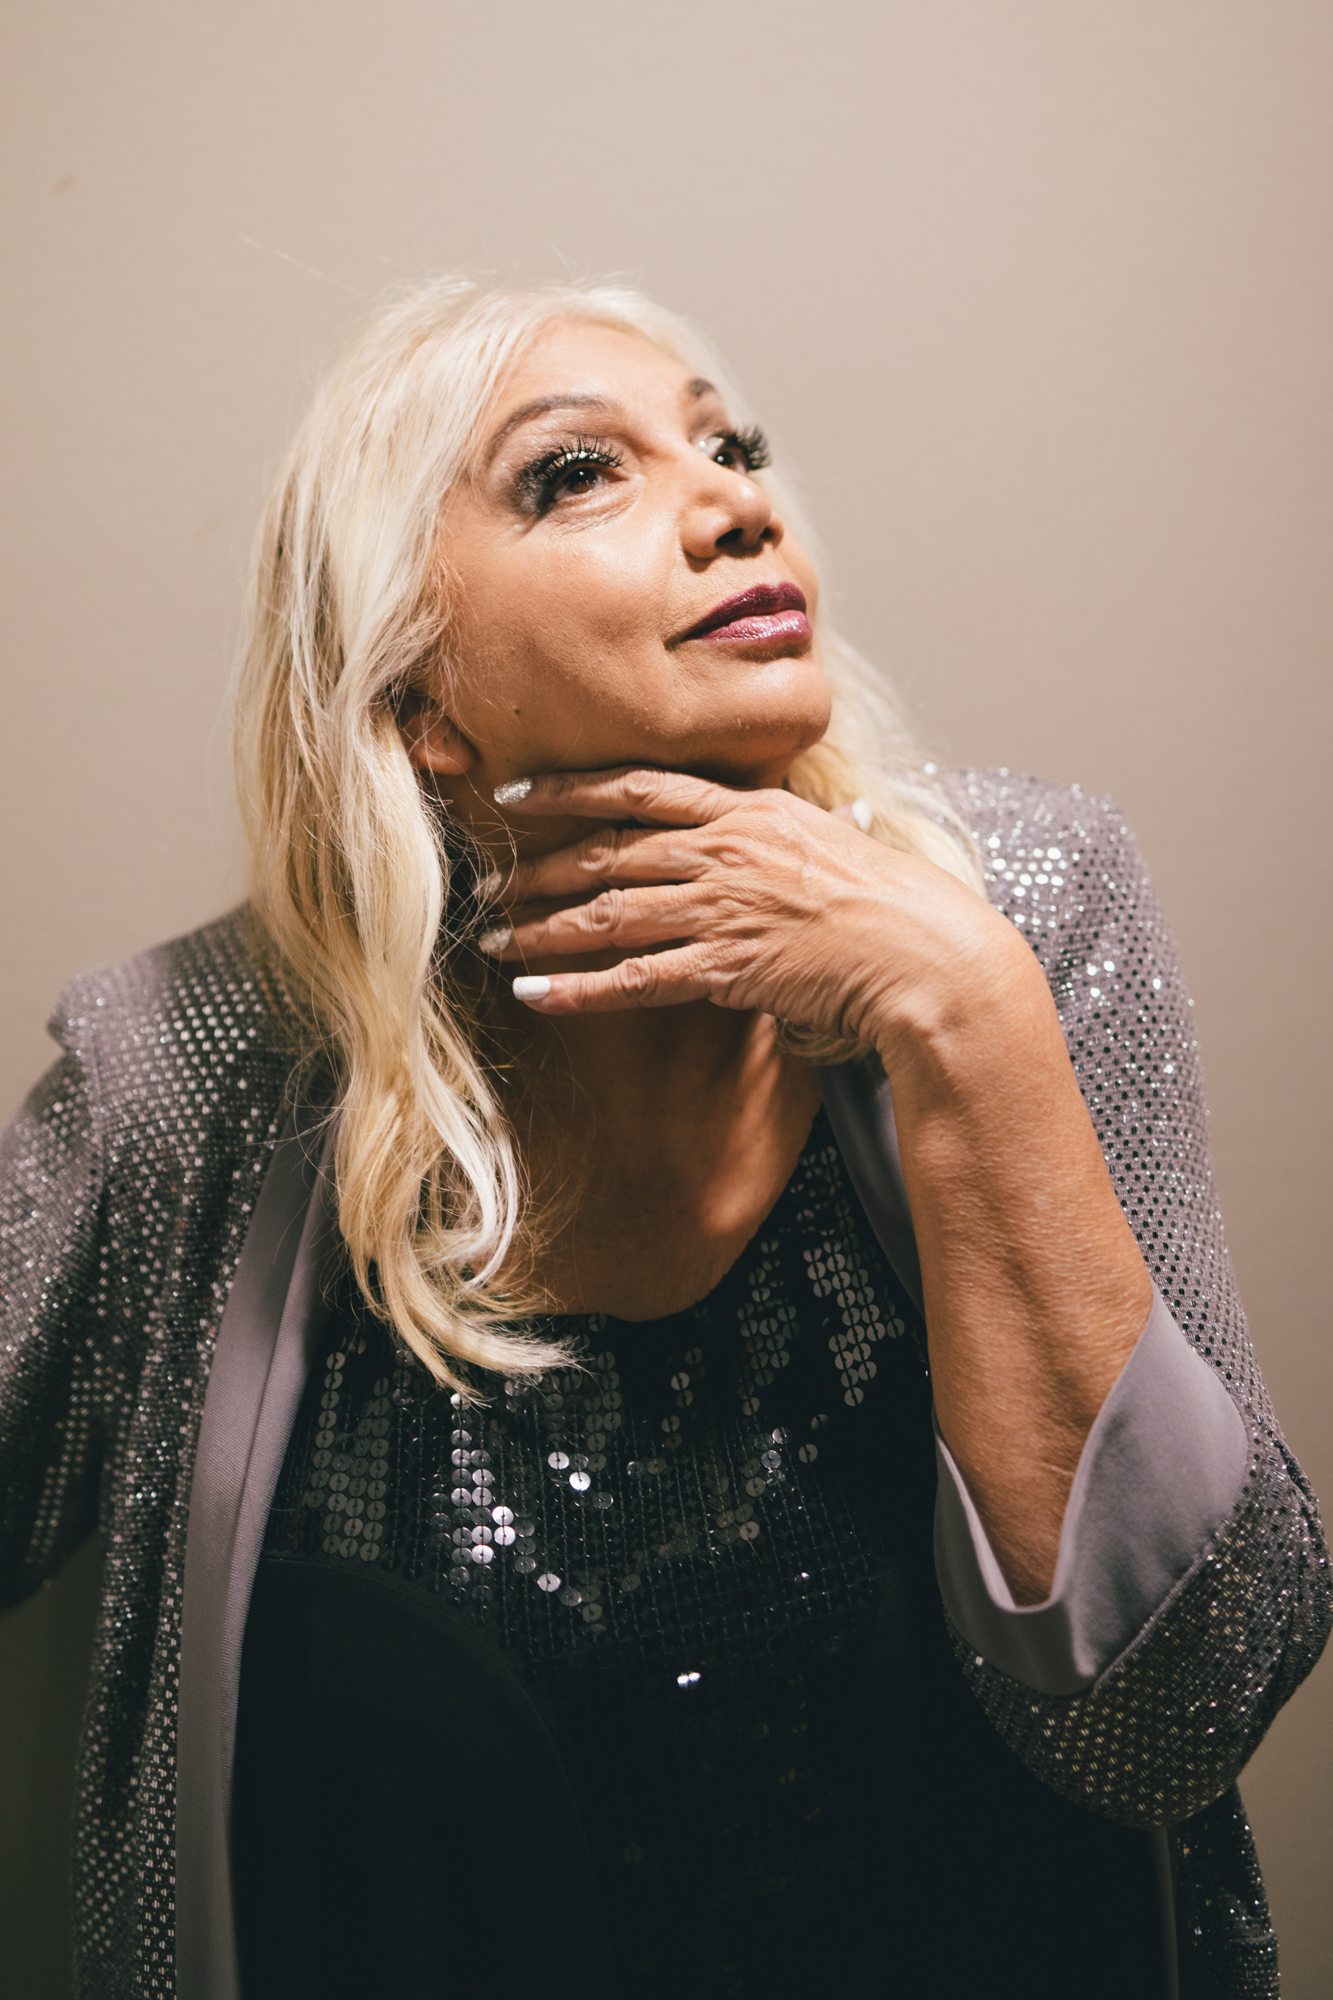 Photo series: Asha Puthli's rare performance at LGW19, captured backstage and onstage by Melanie Marsman